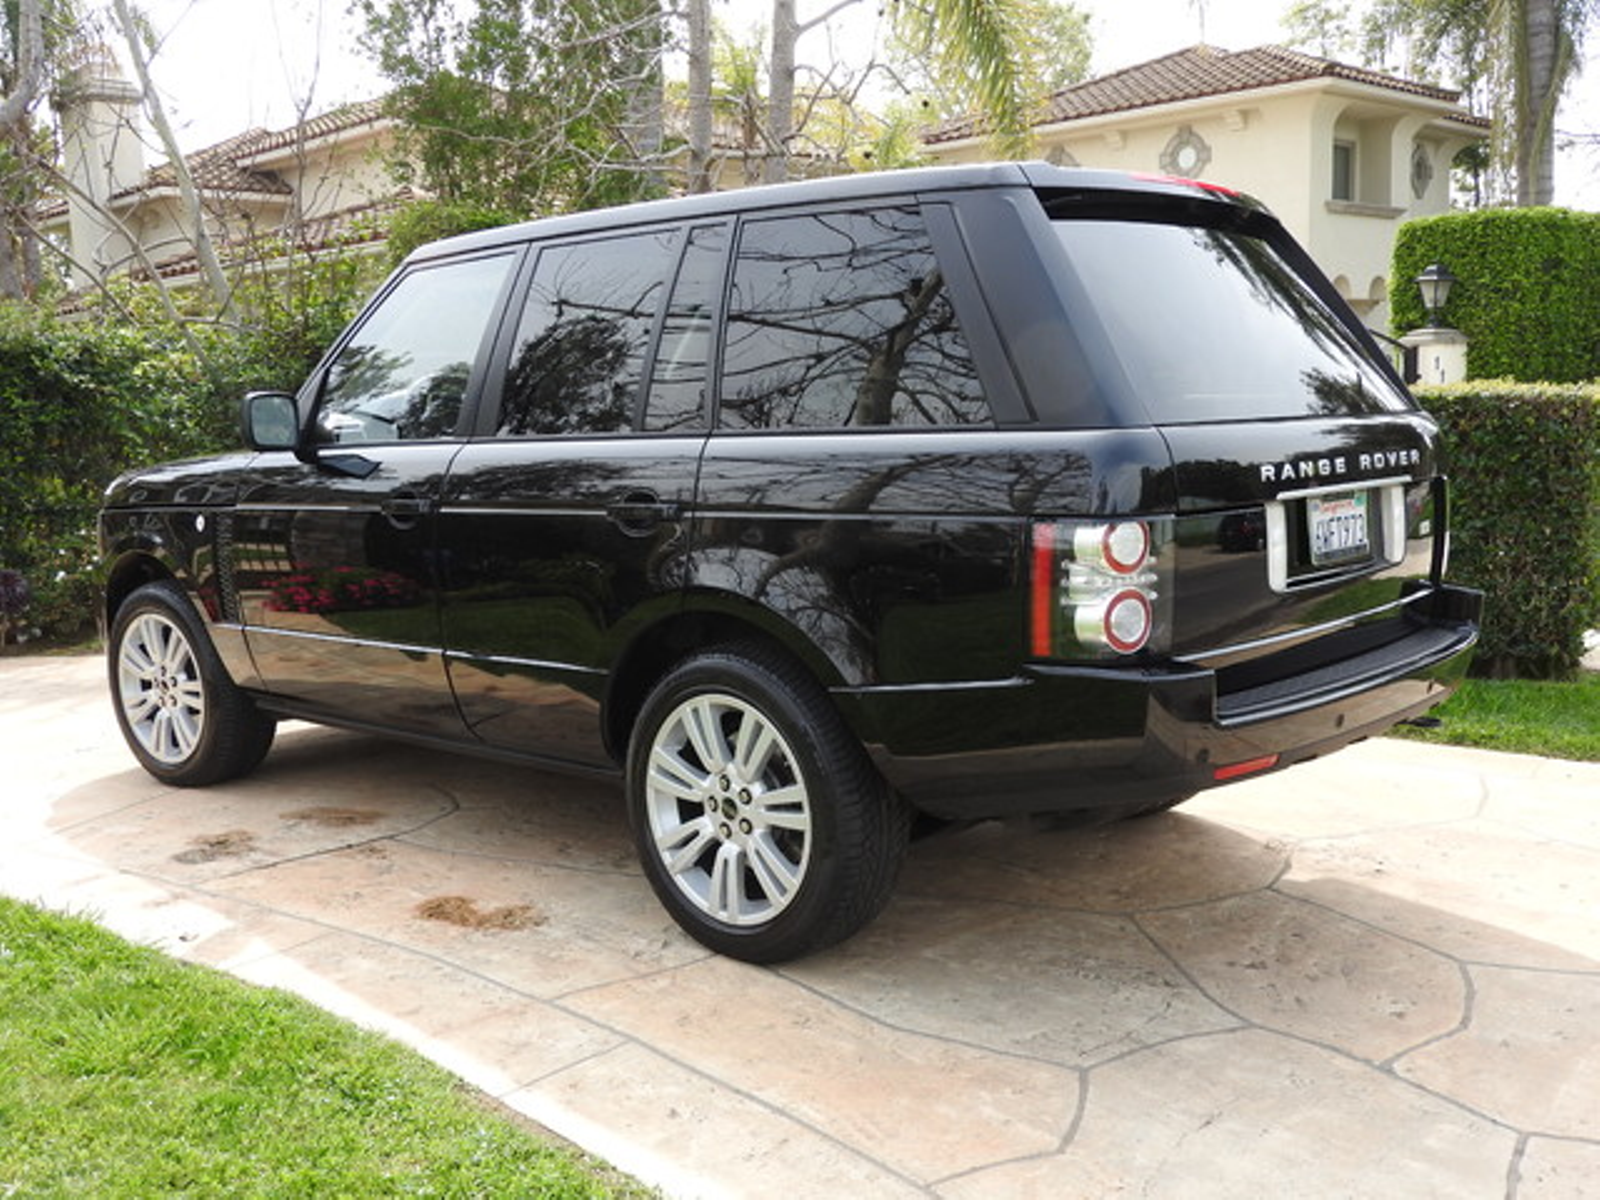 used land rover range rover for sale in los angeles ca autos post. Black Bedroom Furniture Sets. Home Design Ideas